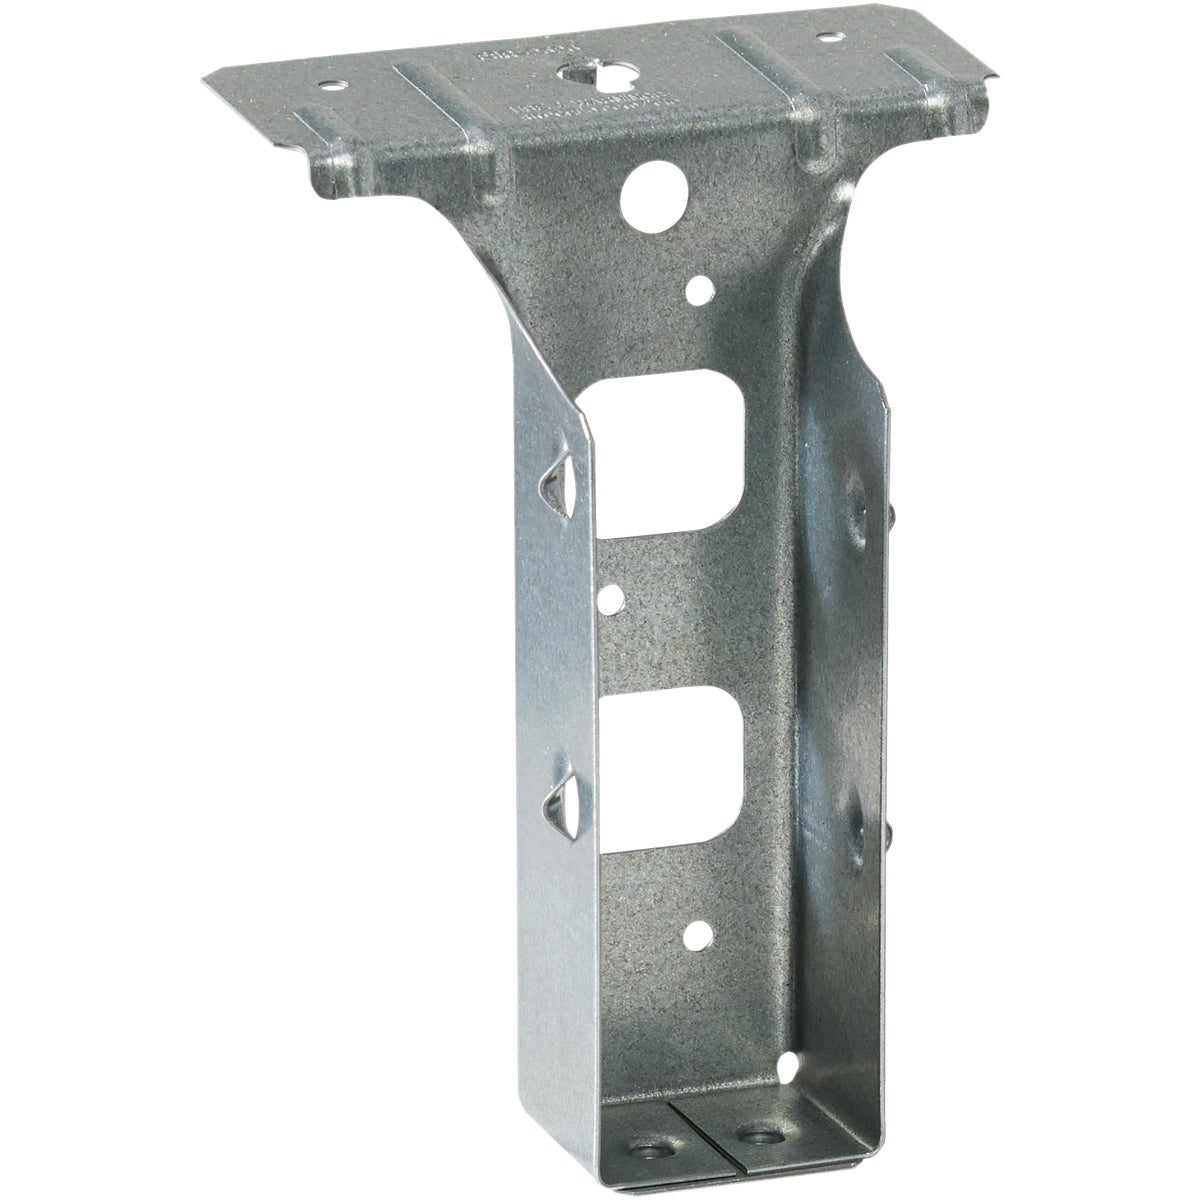 2X6 POST FRAME HANGER - PF26B by Simpson Strong Tie